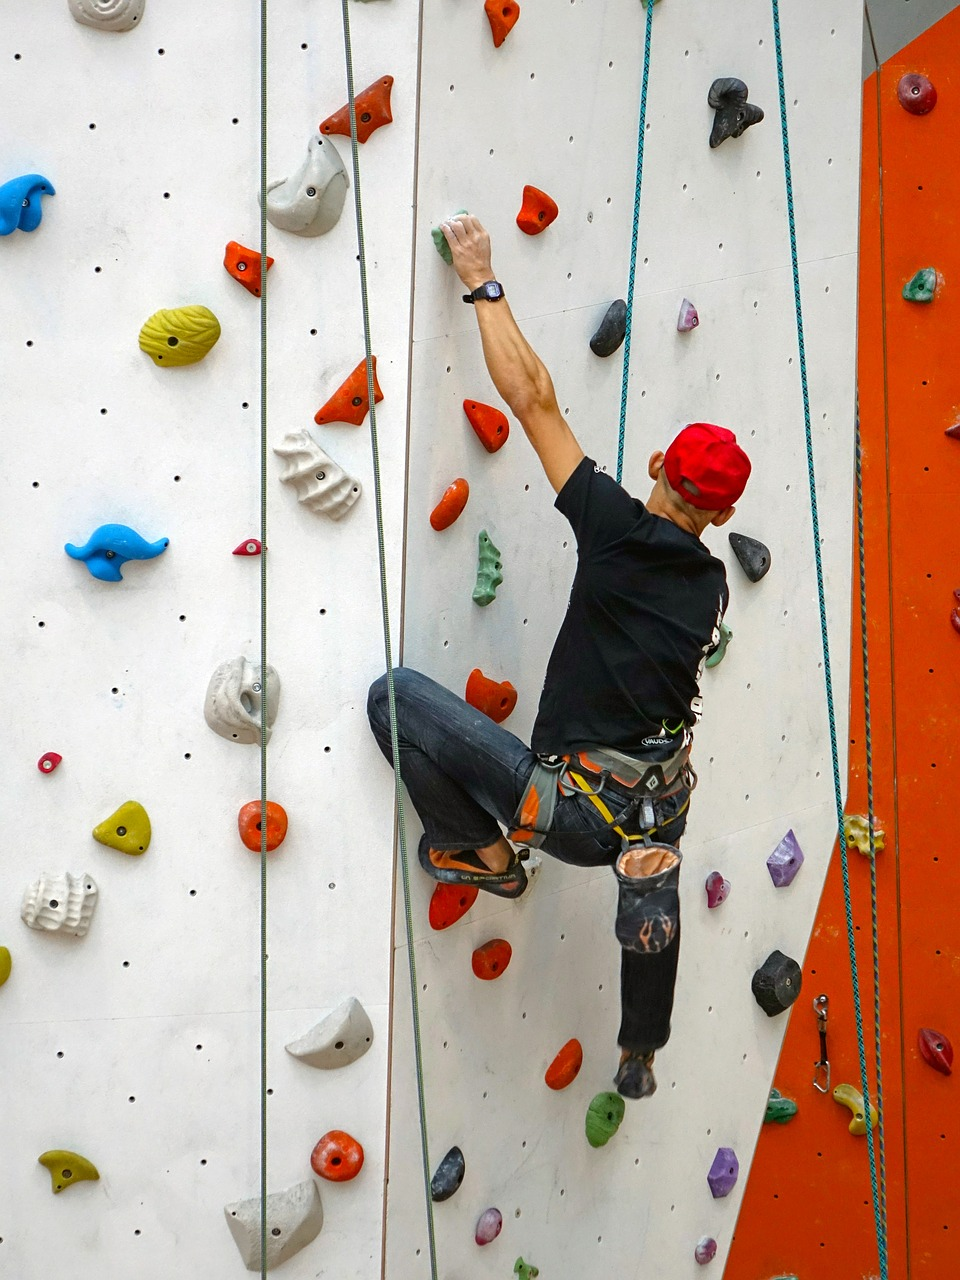 Climbing is one of the things to try this weekend, as it is good for your physical, mental and social health ... photo by CC user cegoh on pixabay